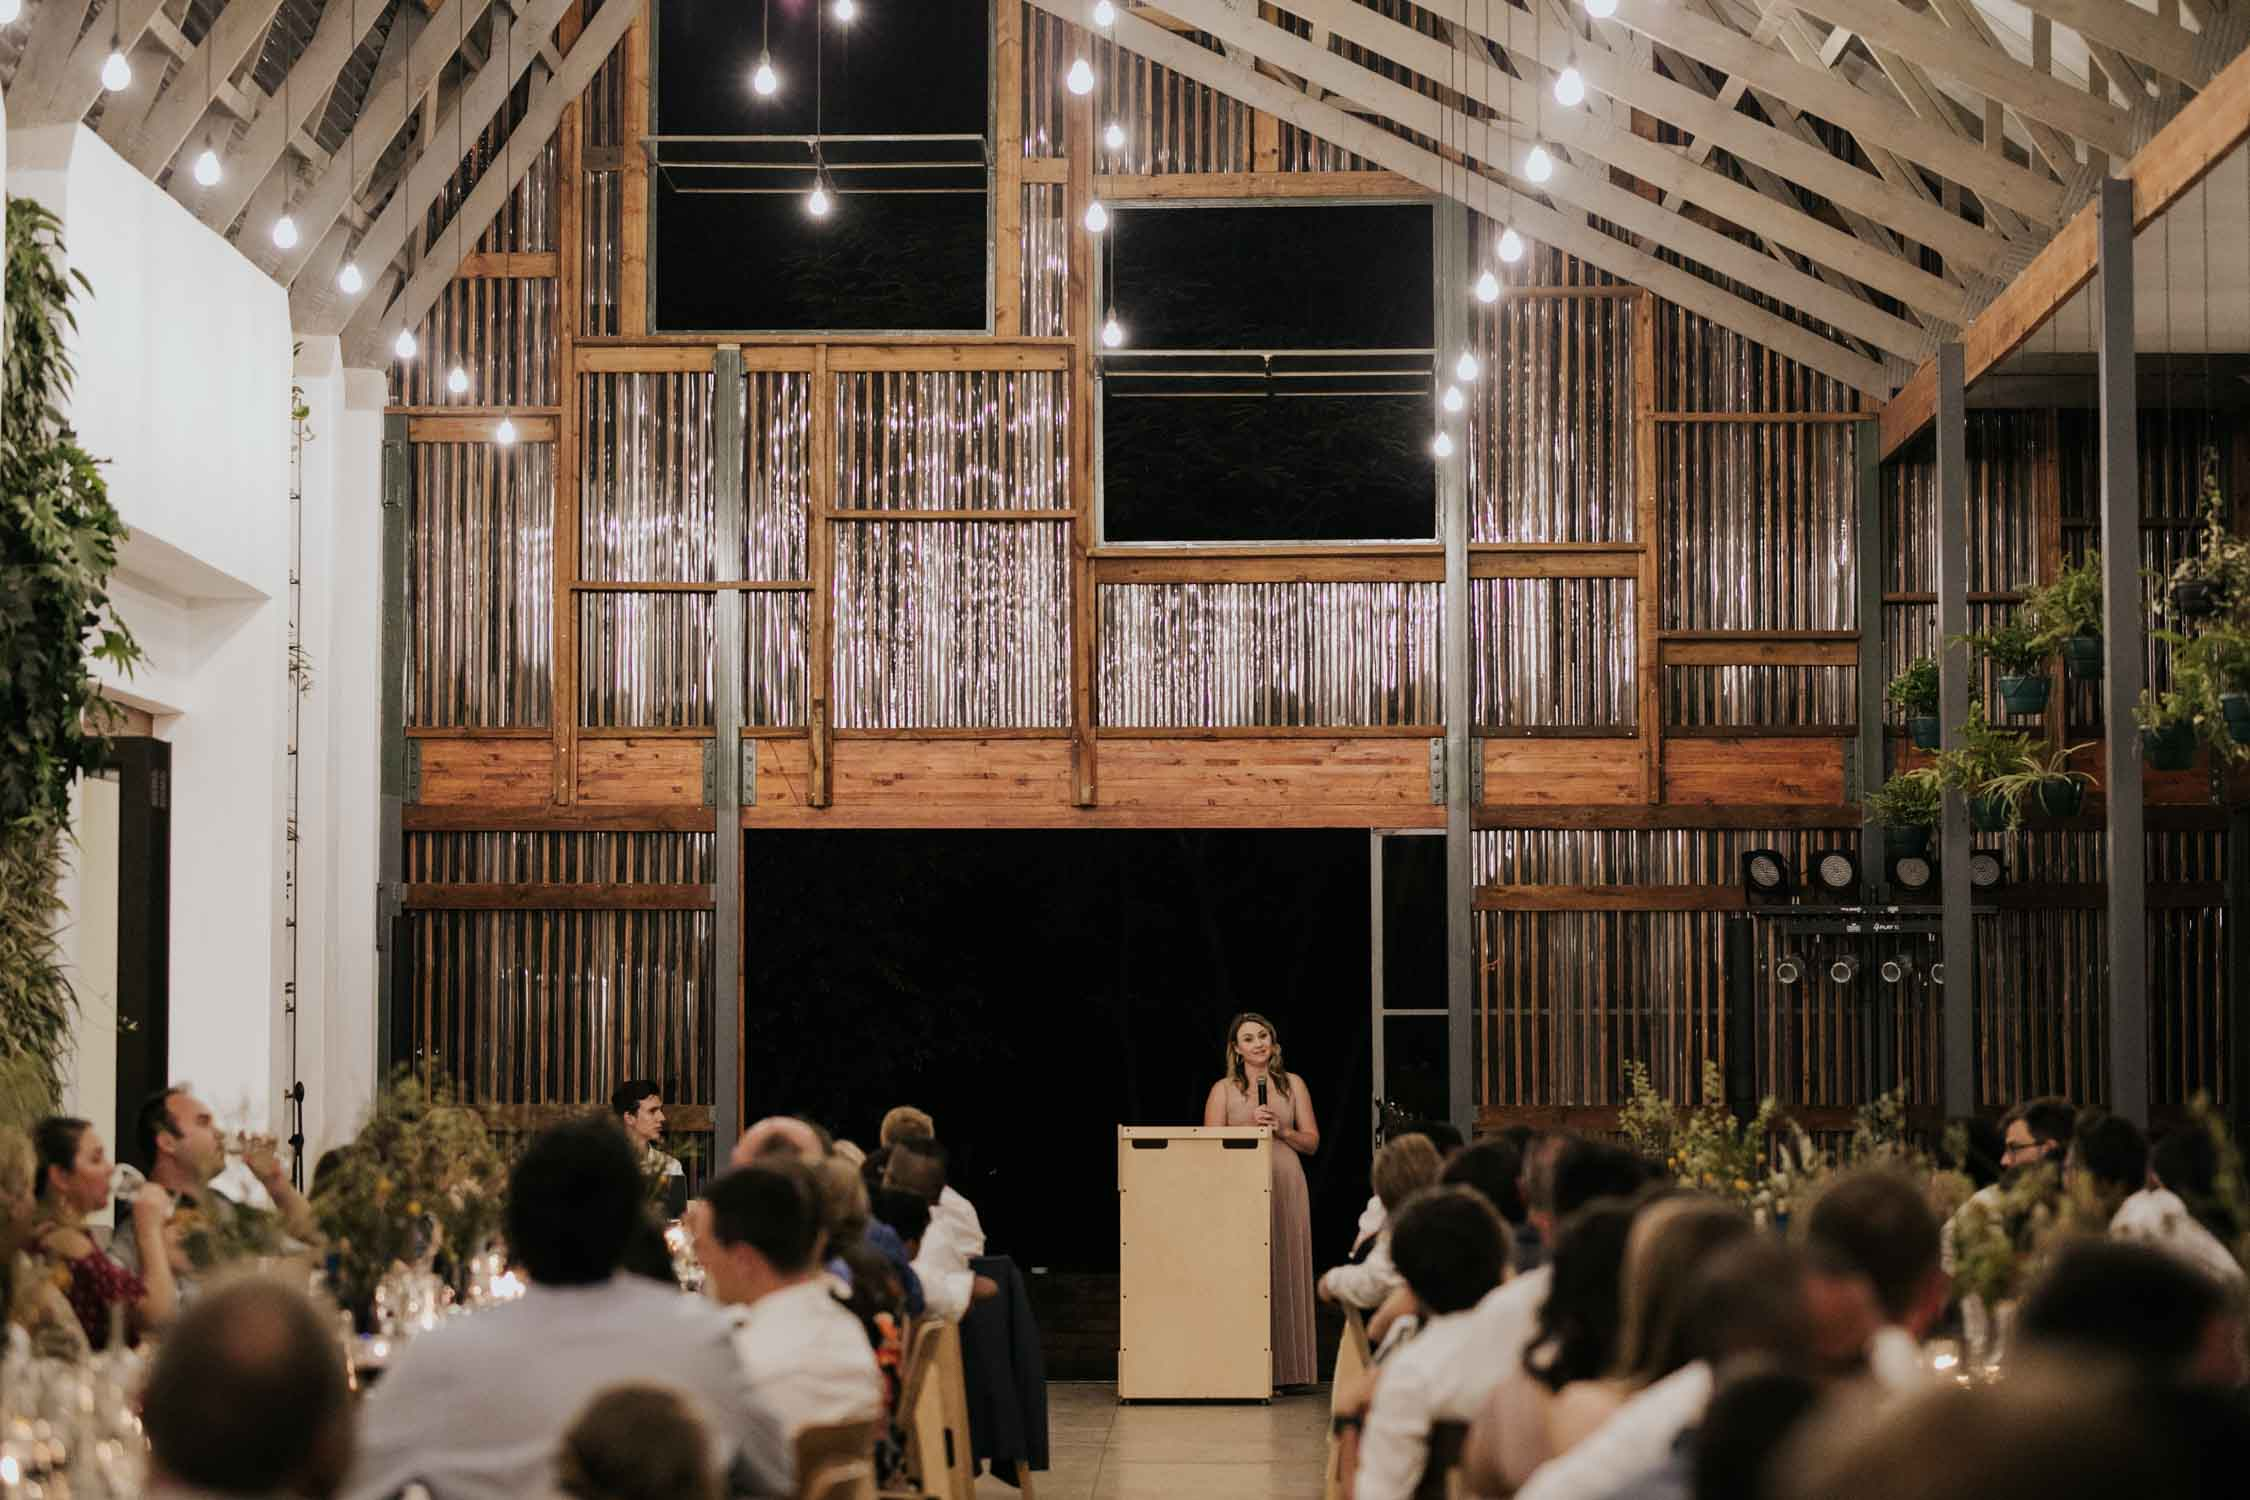 Sister of the bride makes emotional speech at Greenhouse Cafe wedding